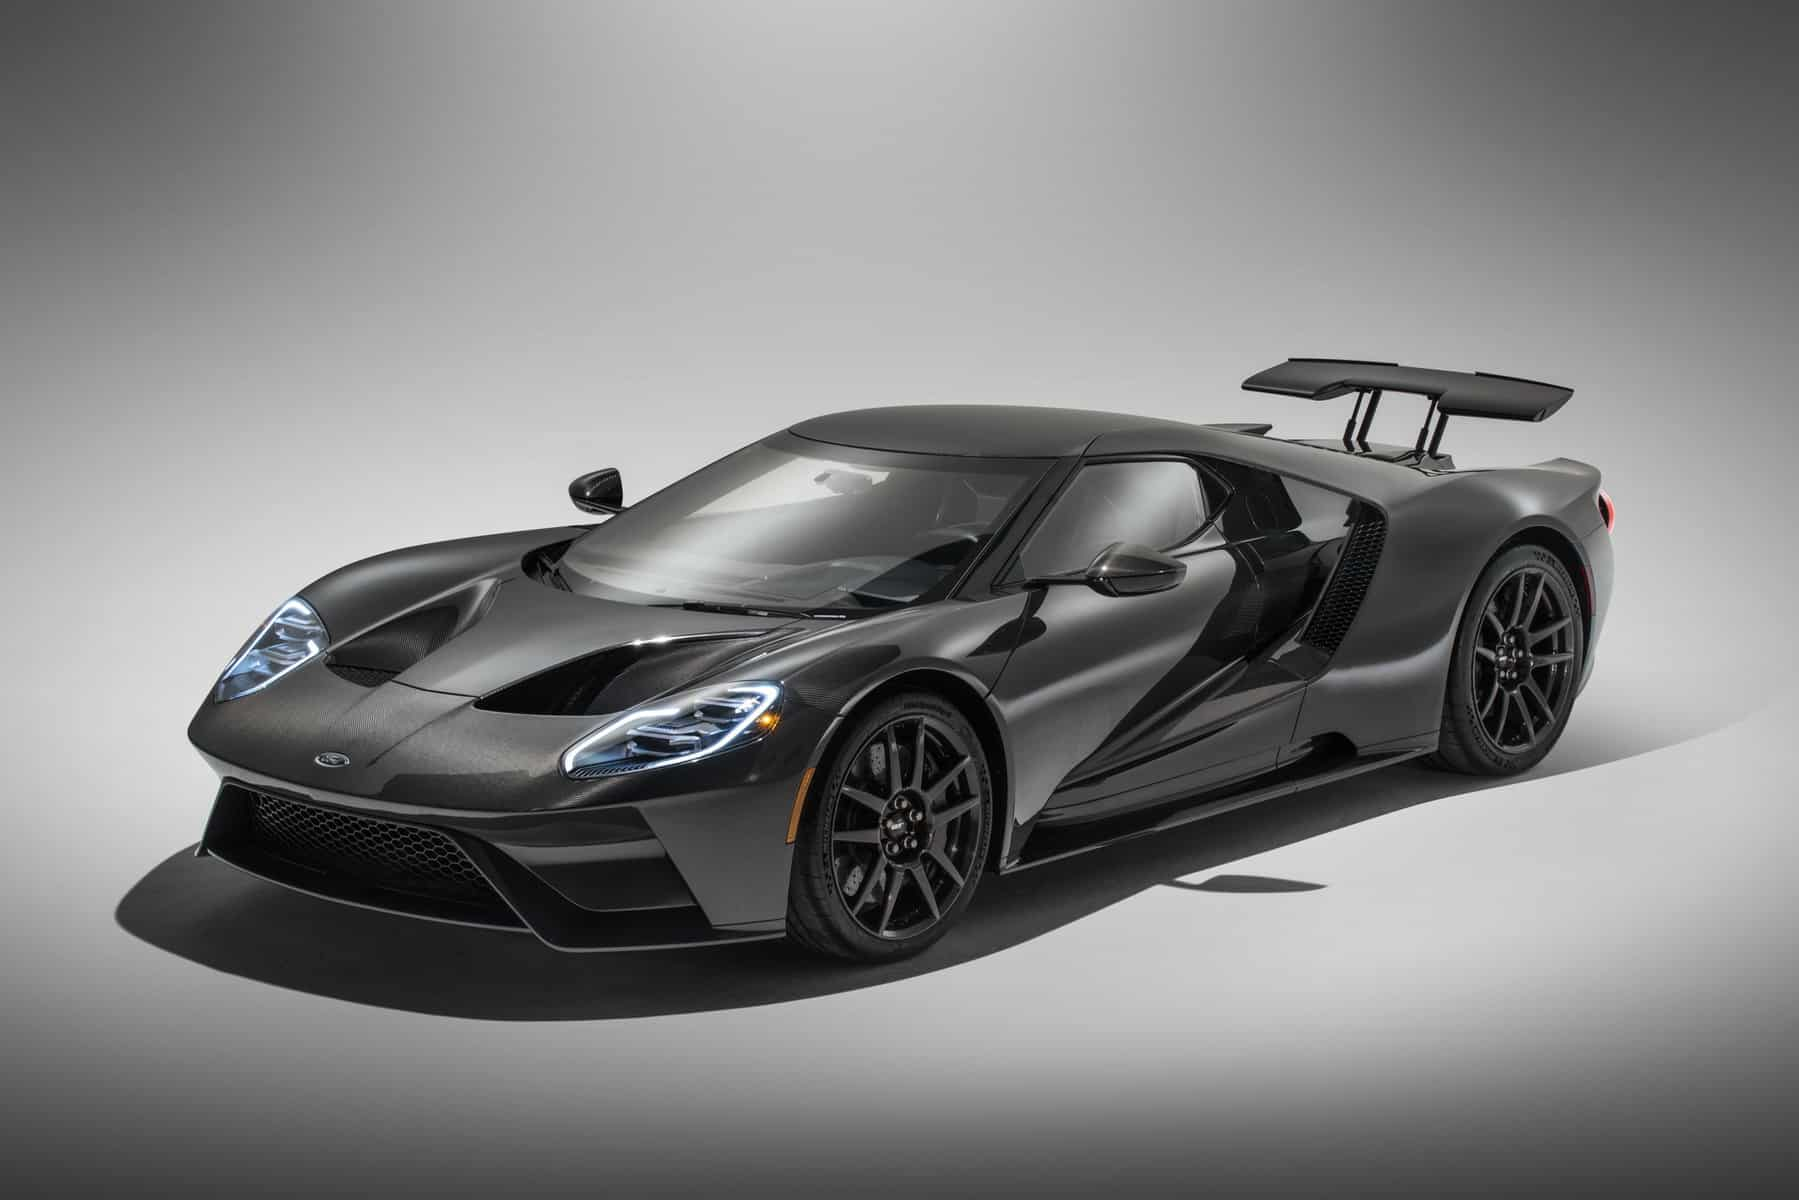 The 2020 Ford GT Liquid Carbon Edition is Absolutely Stunning